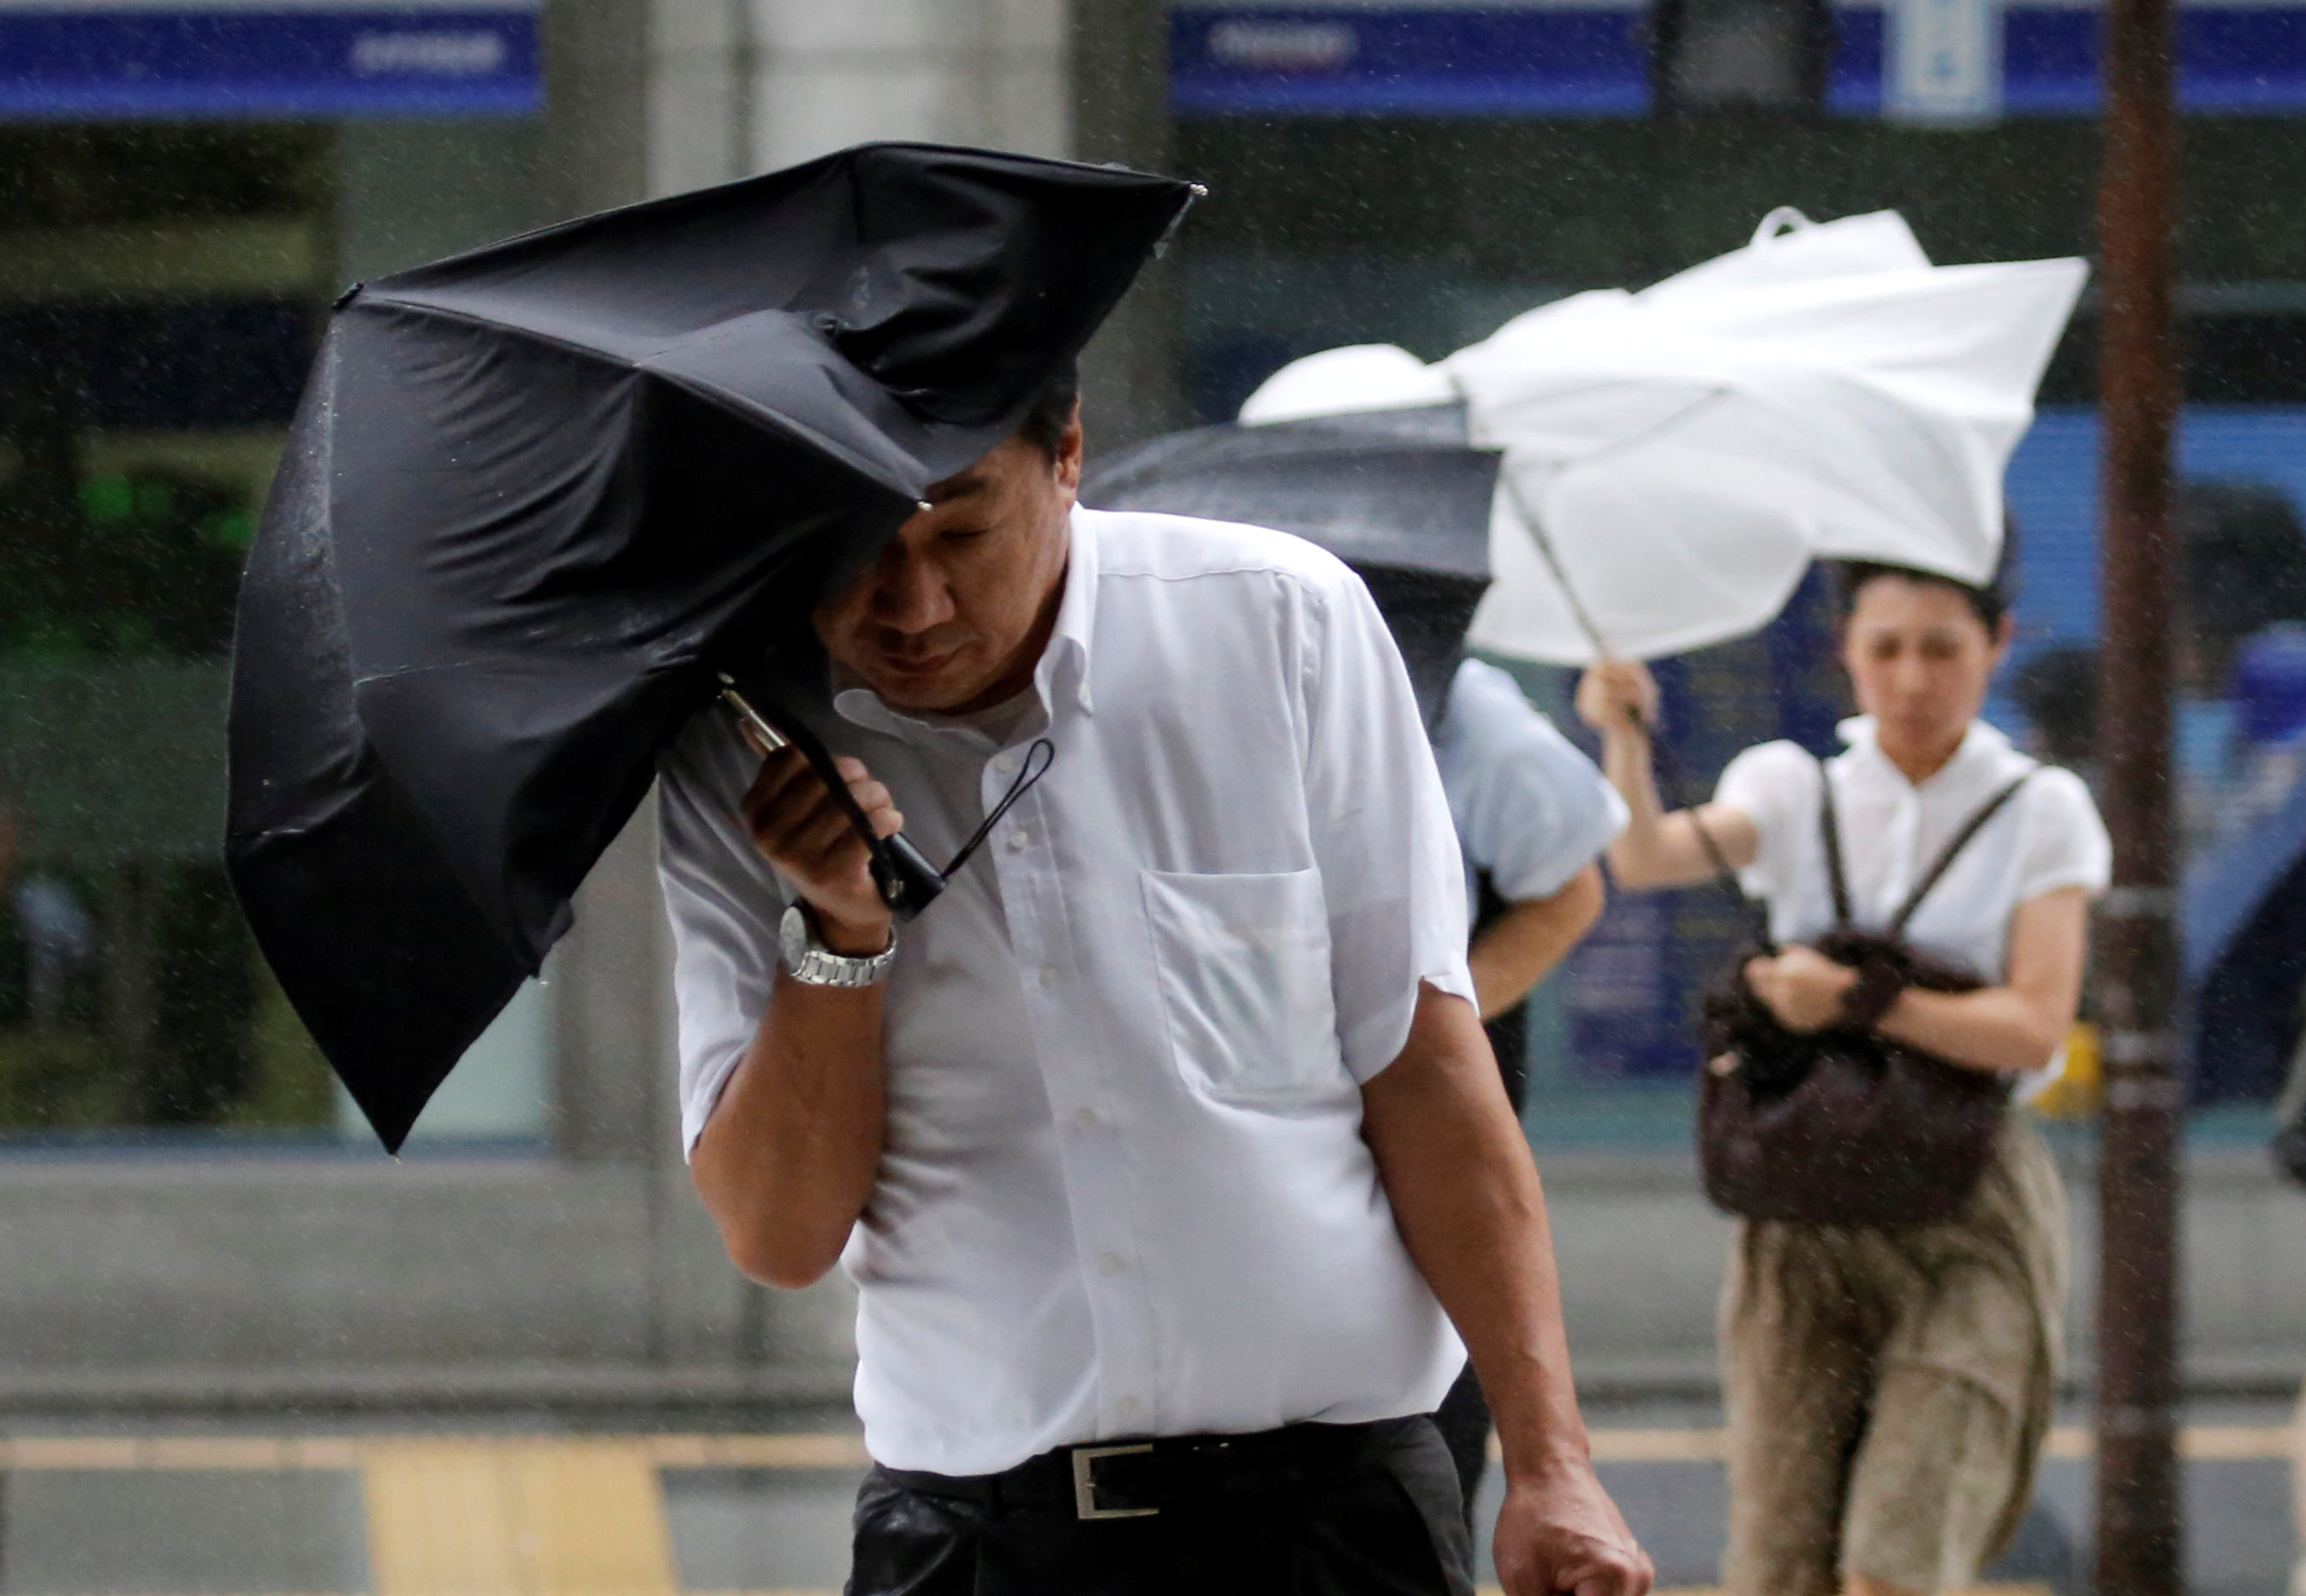 Passersby using an umbrella struggle against a heavy rain and wind as Typhoon Shanshan approaches Japan's mainland in Tokyo, Japan August 8, 2018. REUTERS/Toru Hanai